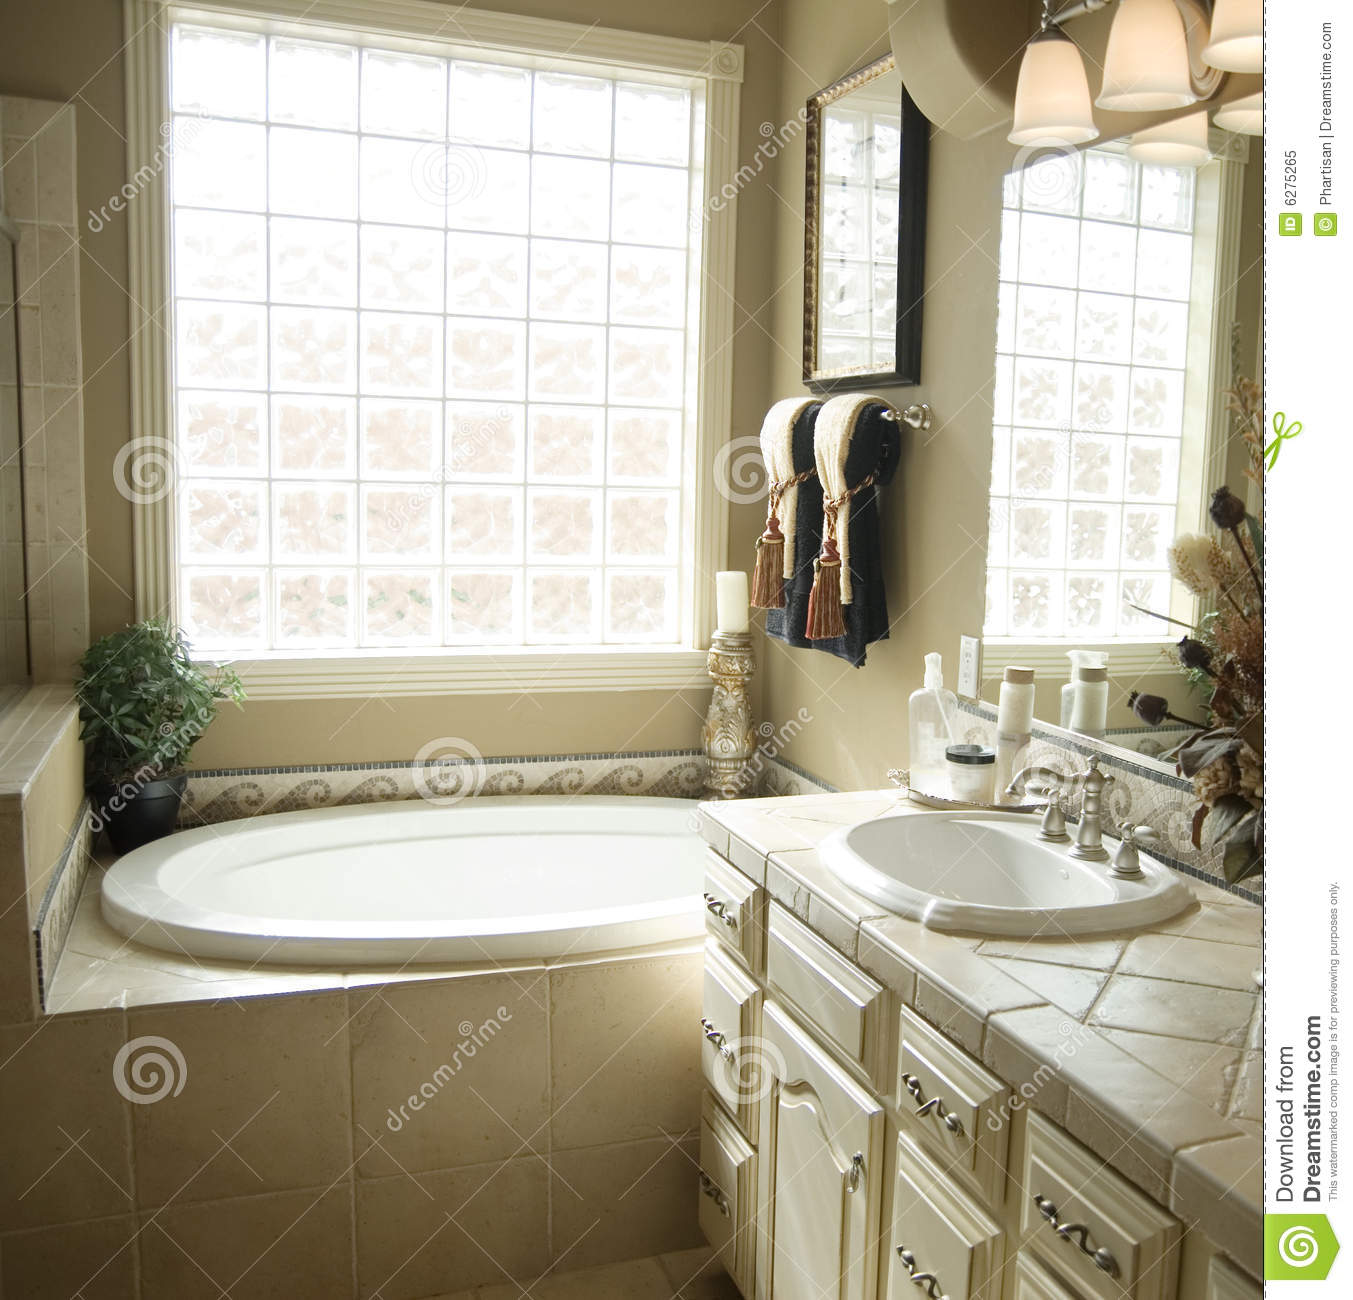 Beautiful Bathroom Interior Design Stock Image Image